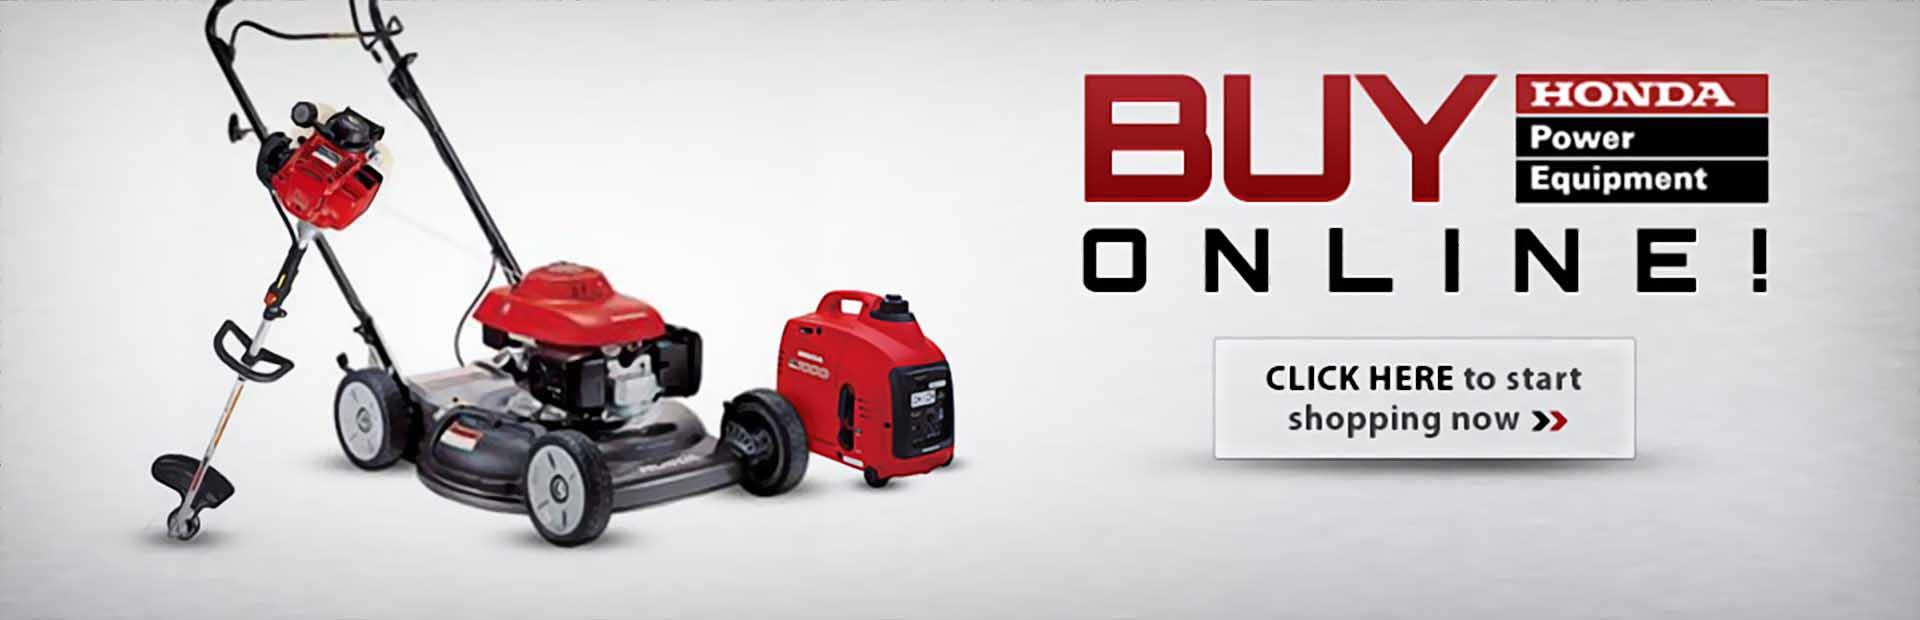 Buy Honda Power Equipment online. Click here to start shopping.